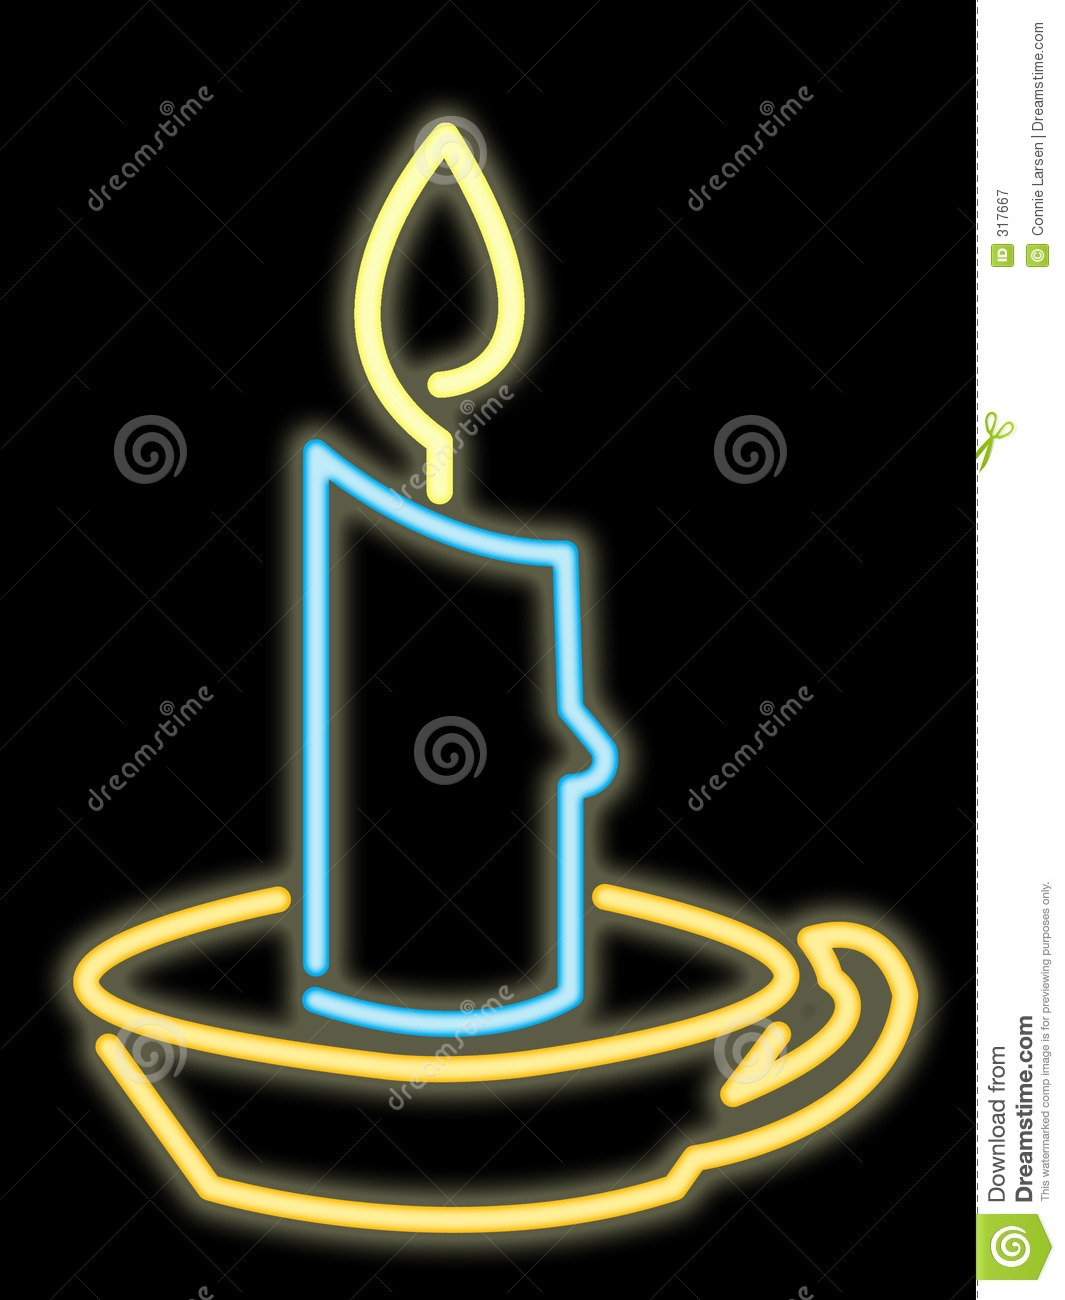 neon candle royalty free stock photography image 317667